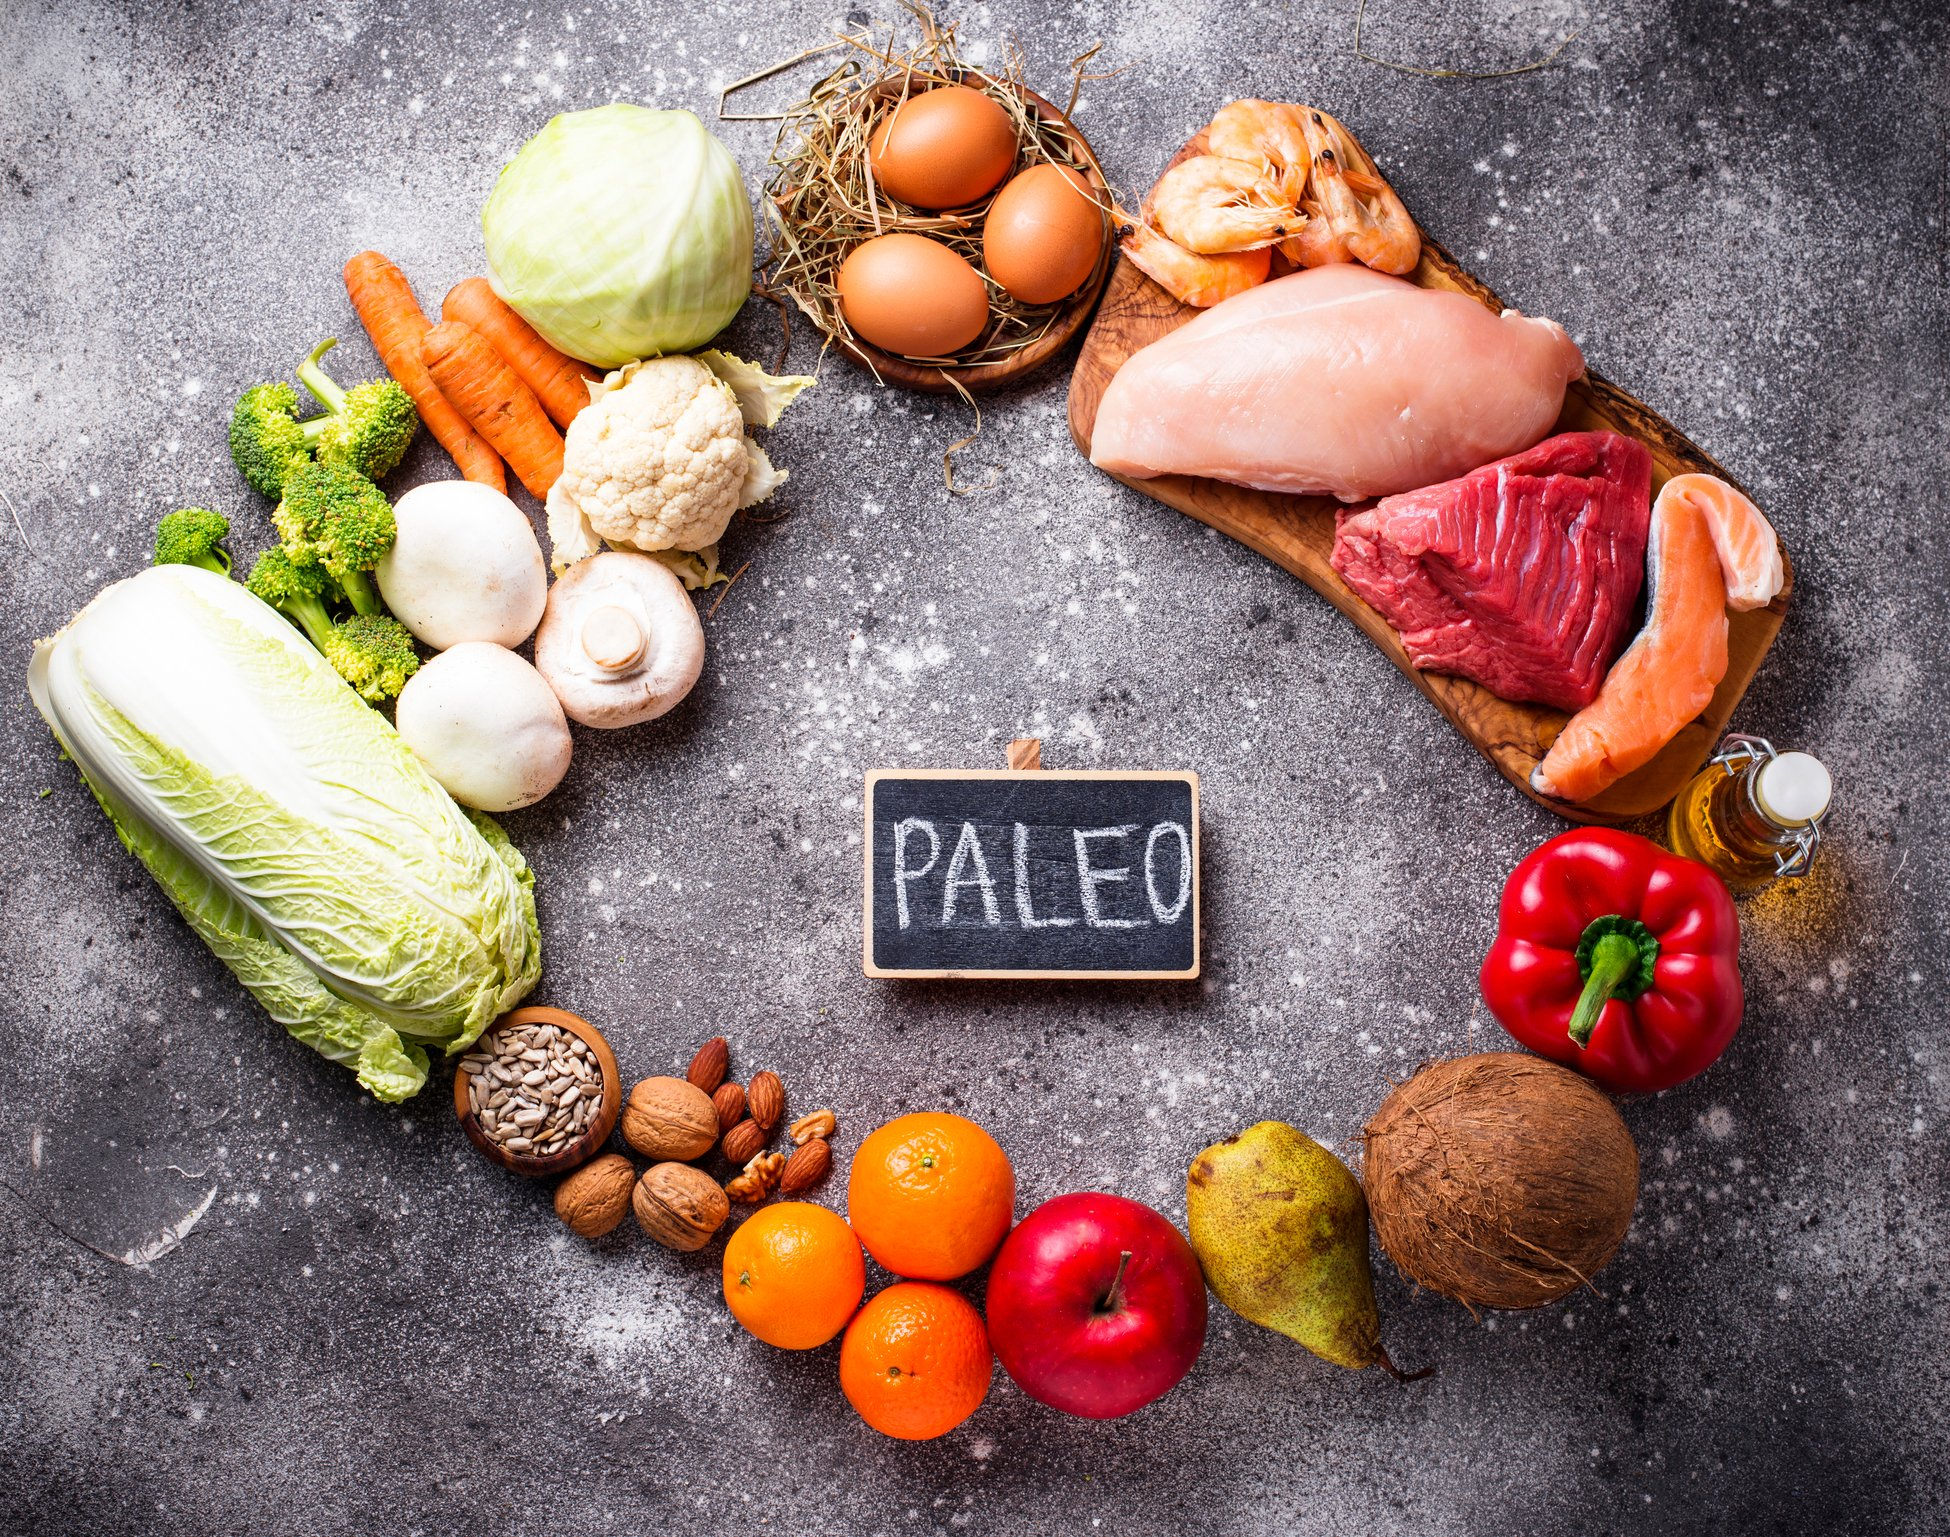 The paleo diet mimics how prehistoric humans may have eaten. (iStock Photo)